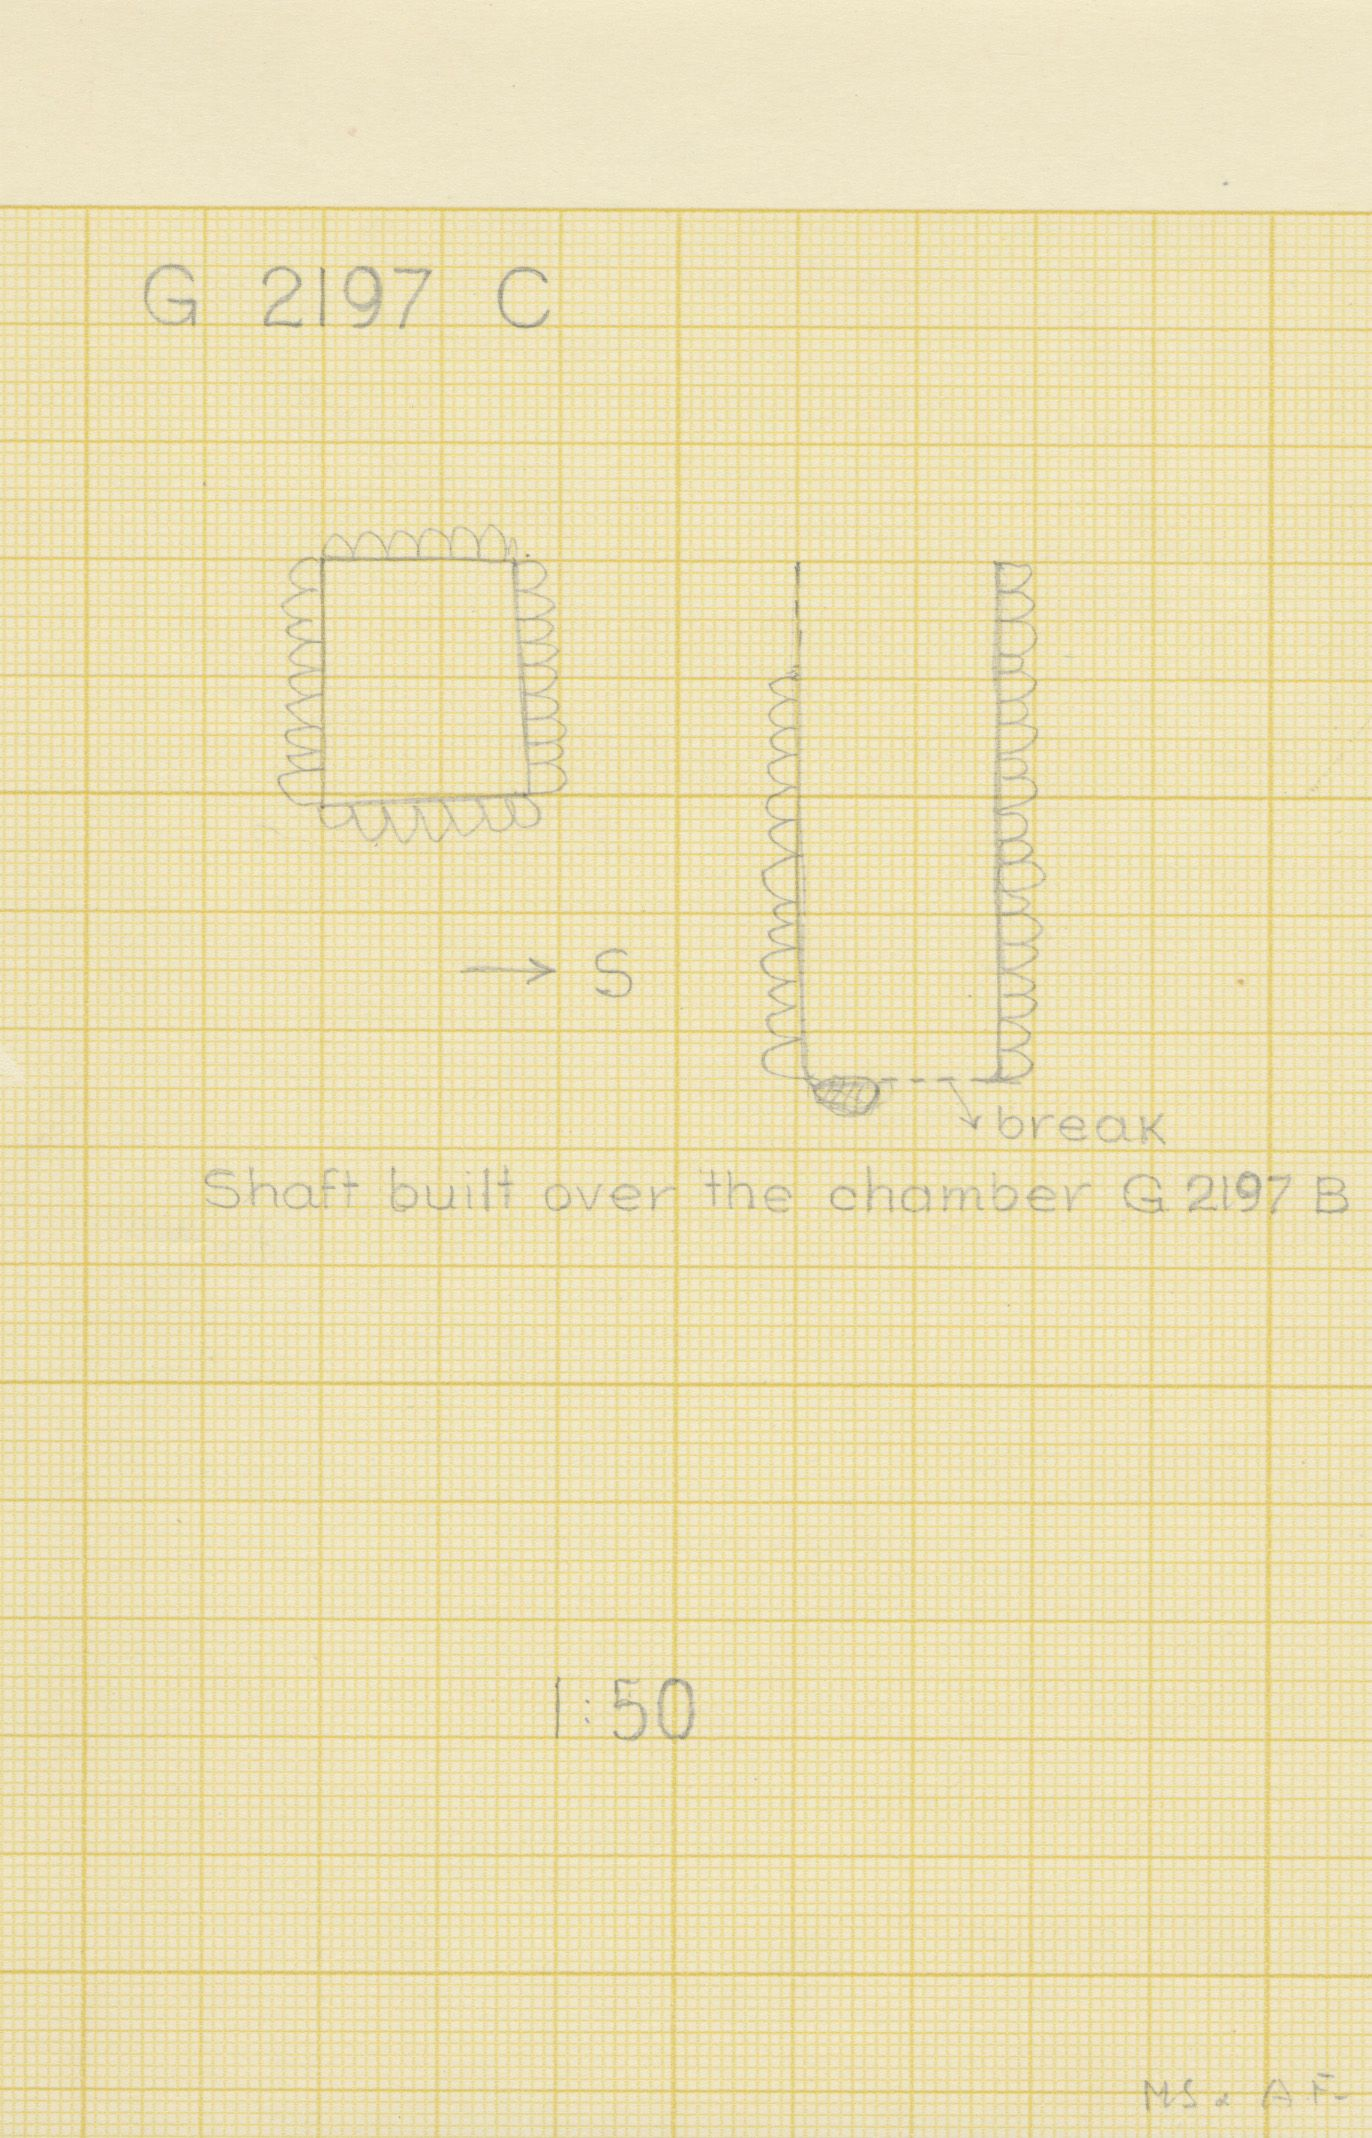 Maps and plans: G 2197, Shaft C